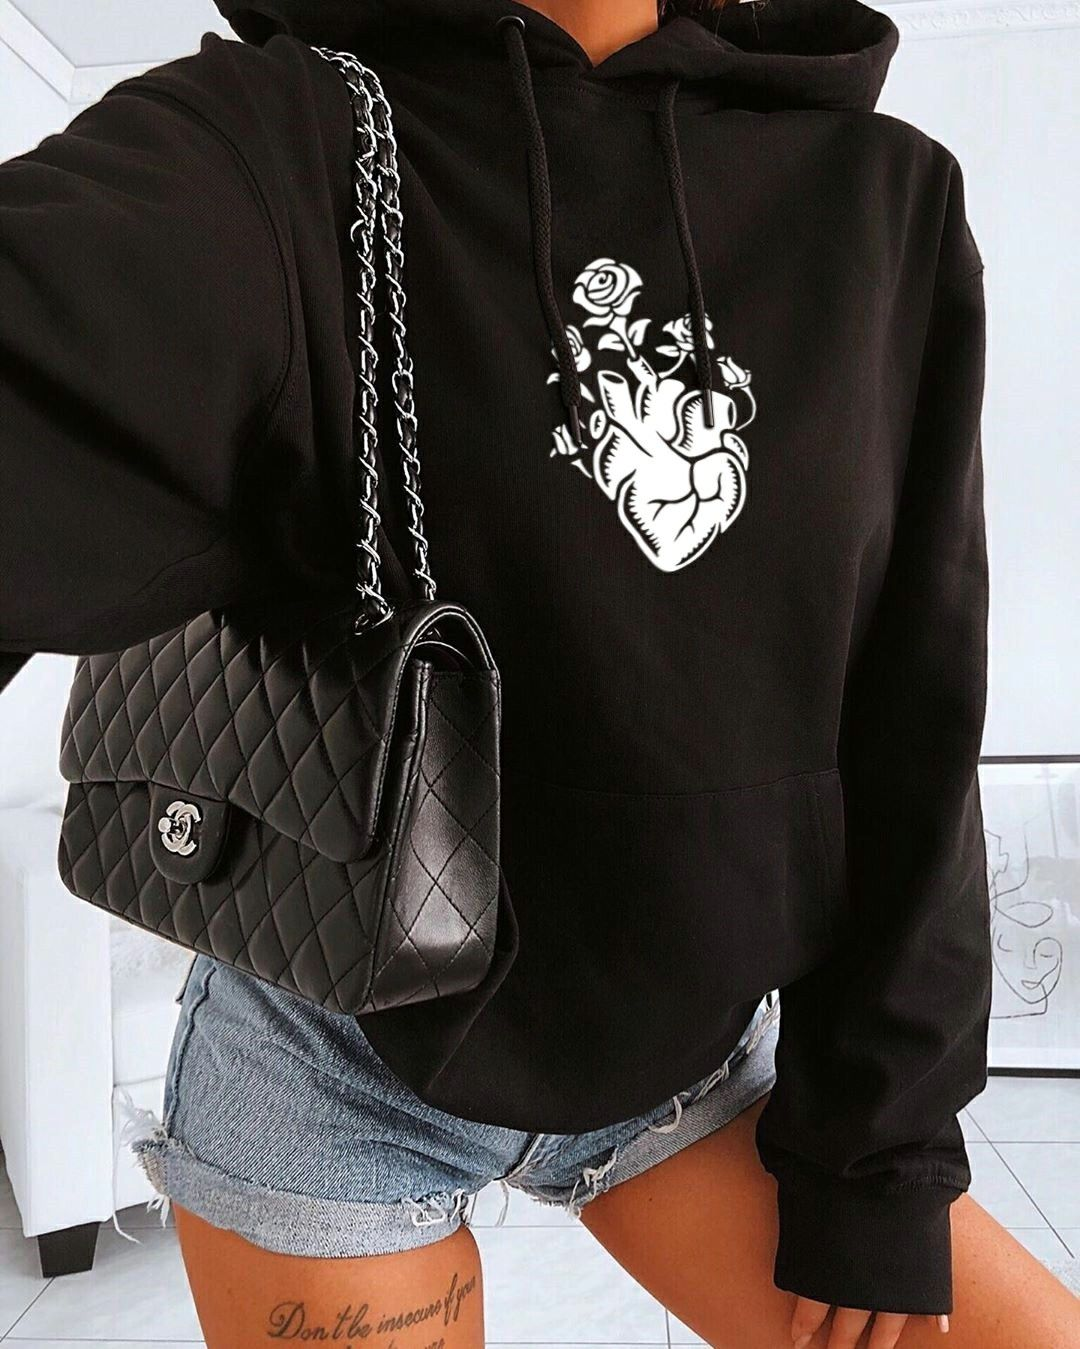 Most Popular Black Women's Hoodie For Fashion Style #teedesign